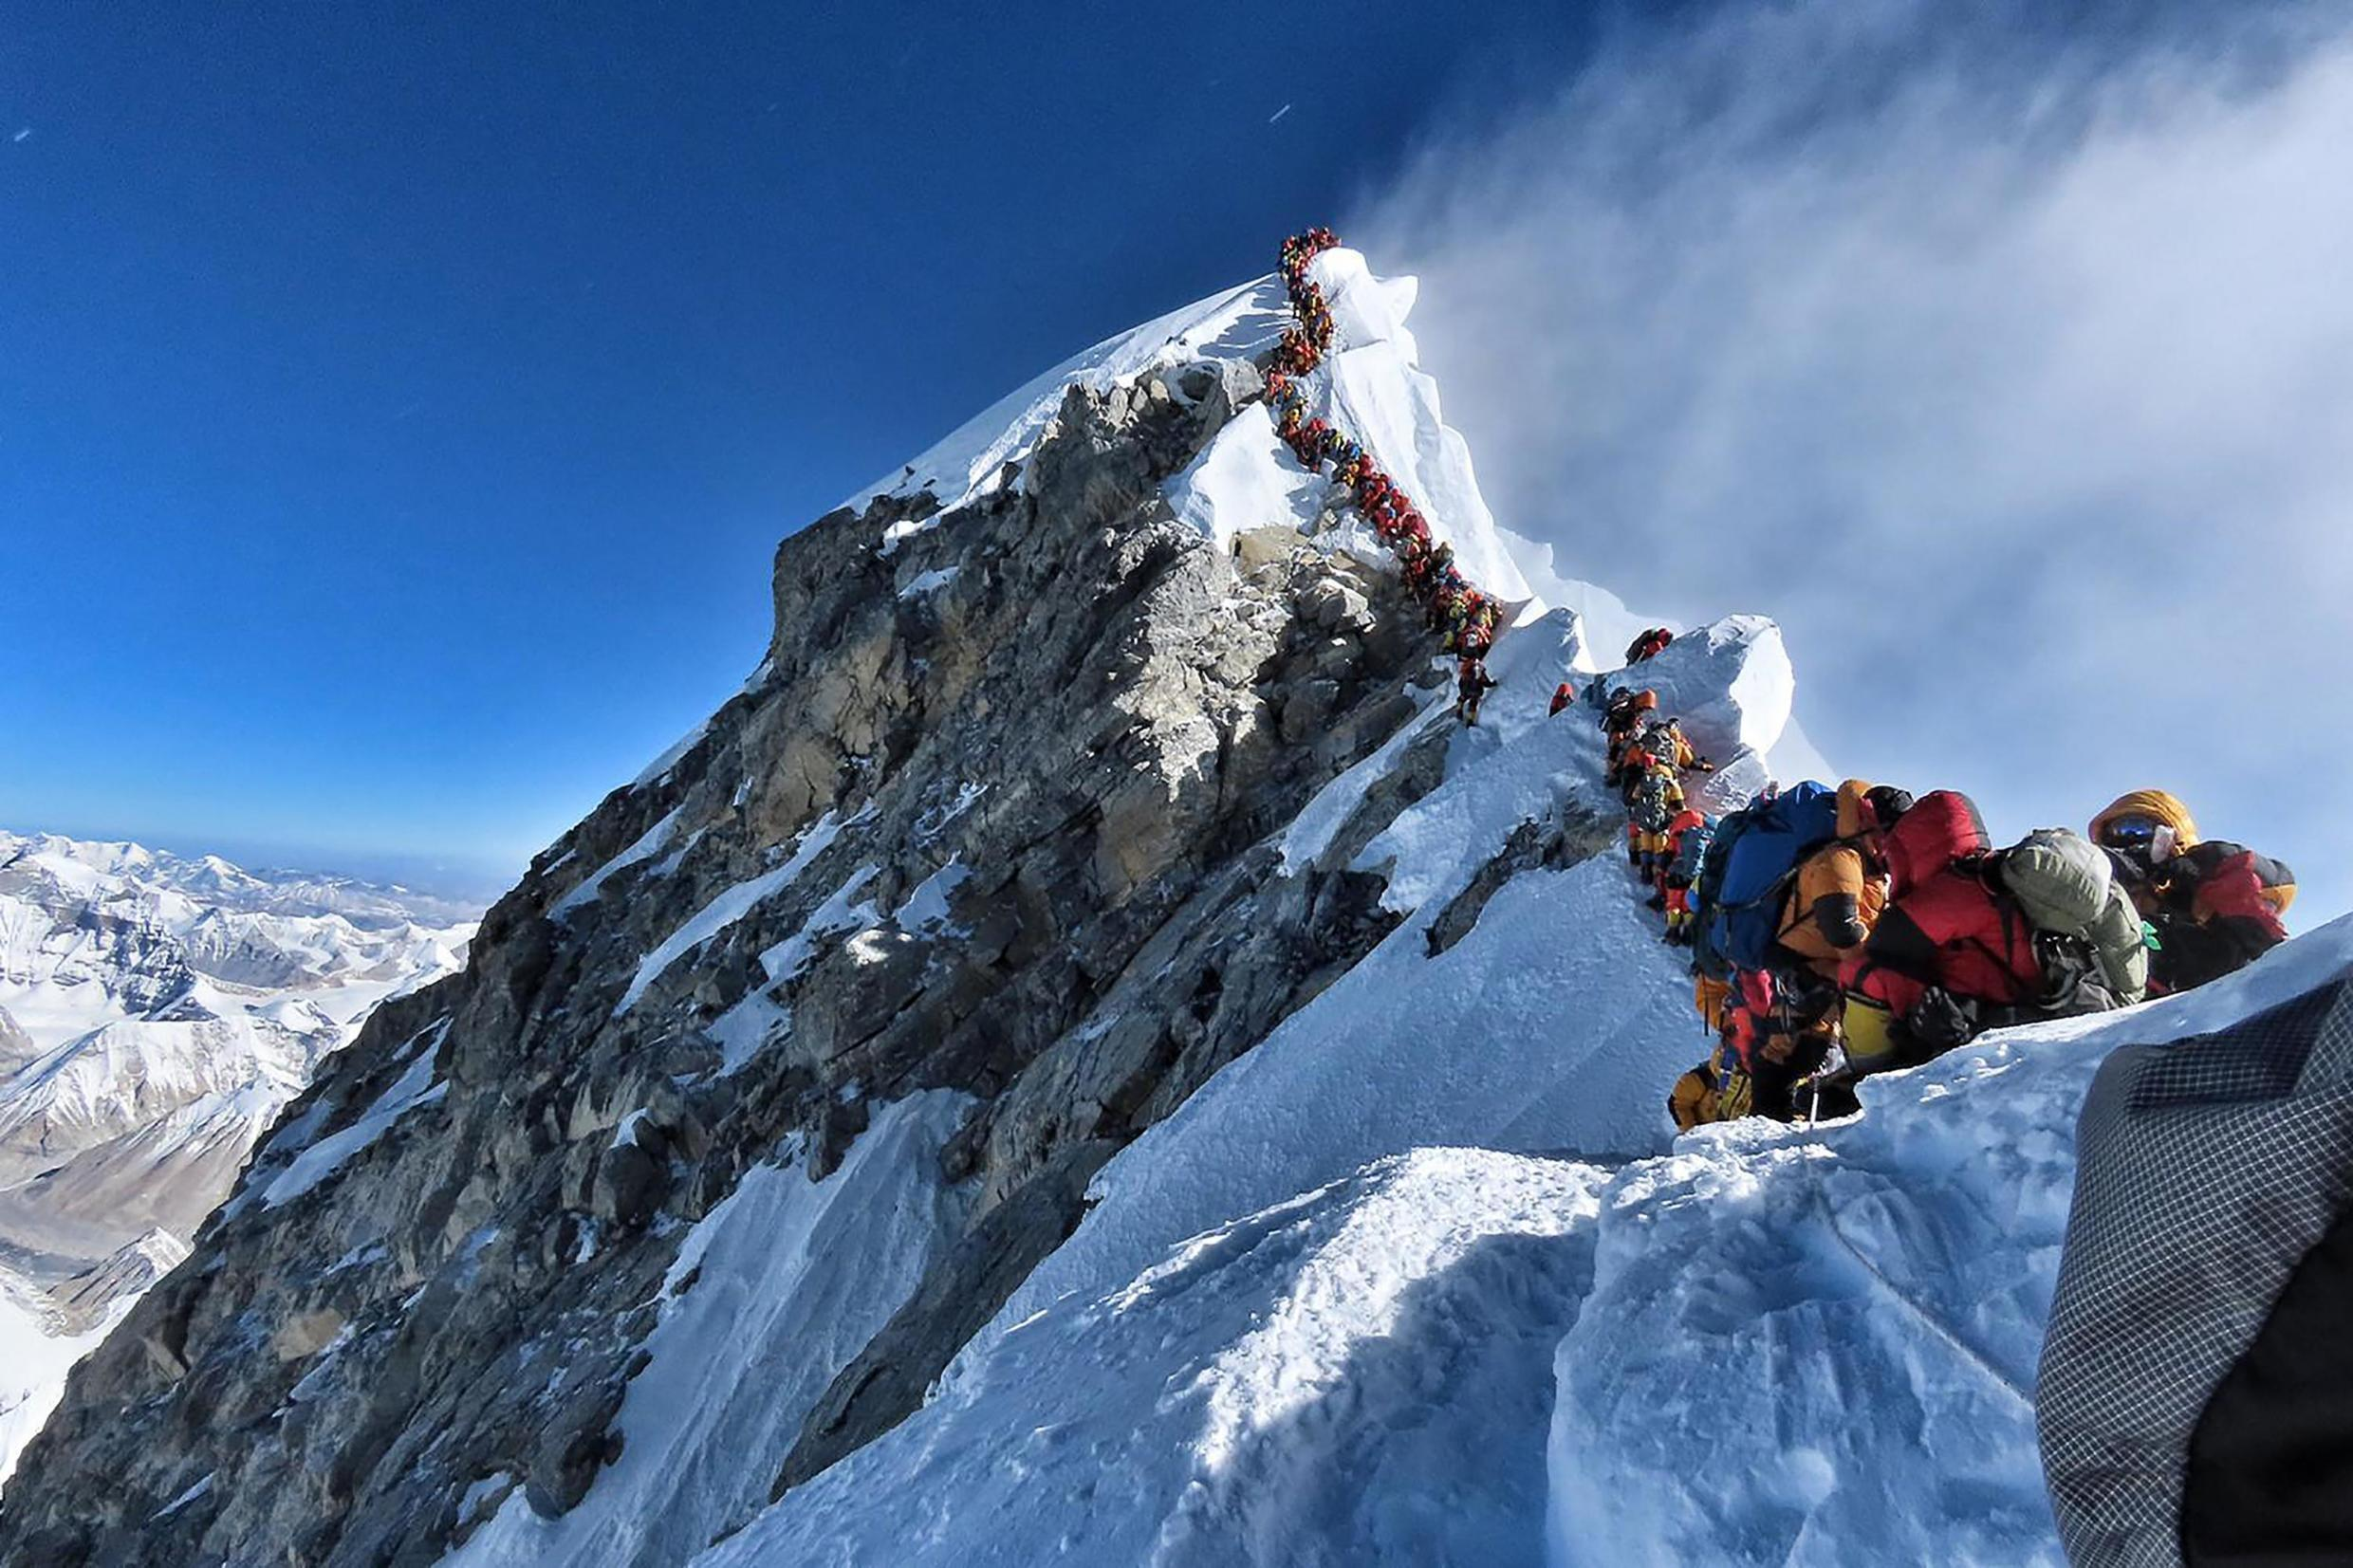 Mountain climbers lining up to stand at the summit of Mount Everest earlier this season.